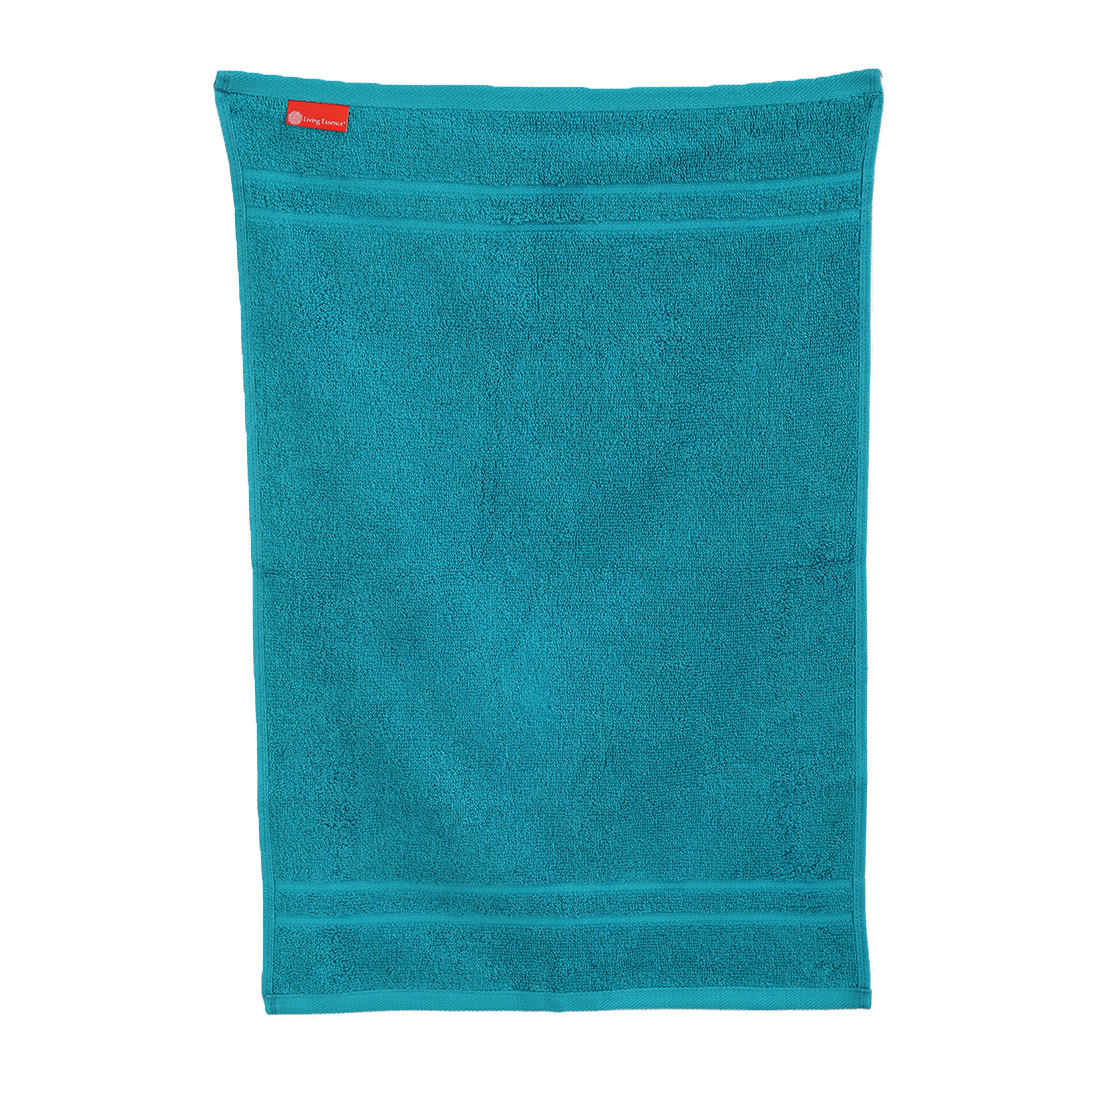 Hand Towel 40X60 Nora Turq Combed Cotton Hand Towels in Turquoise Colour by Living Essence